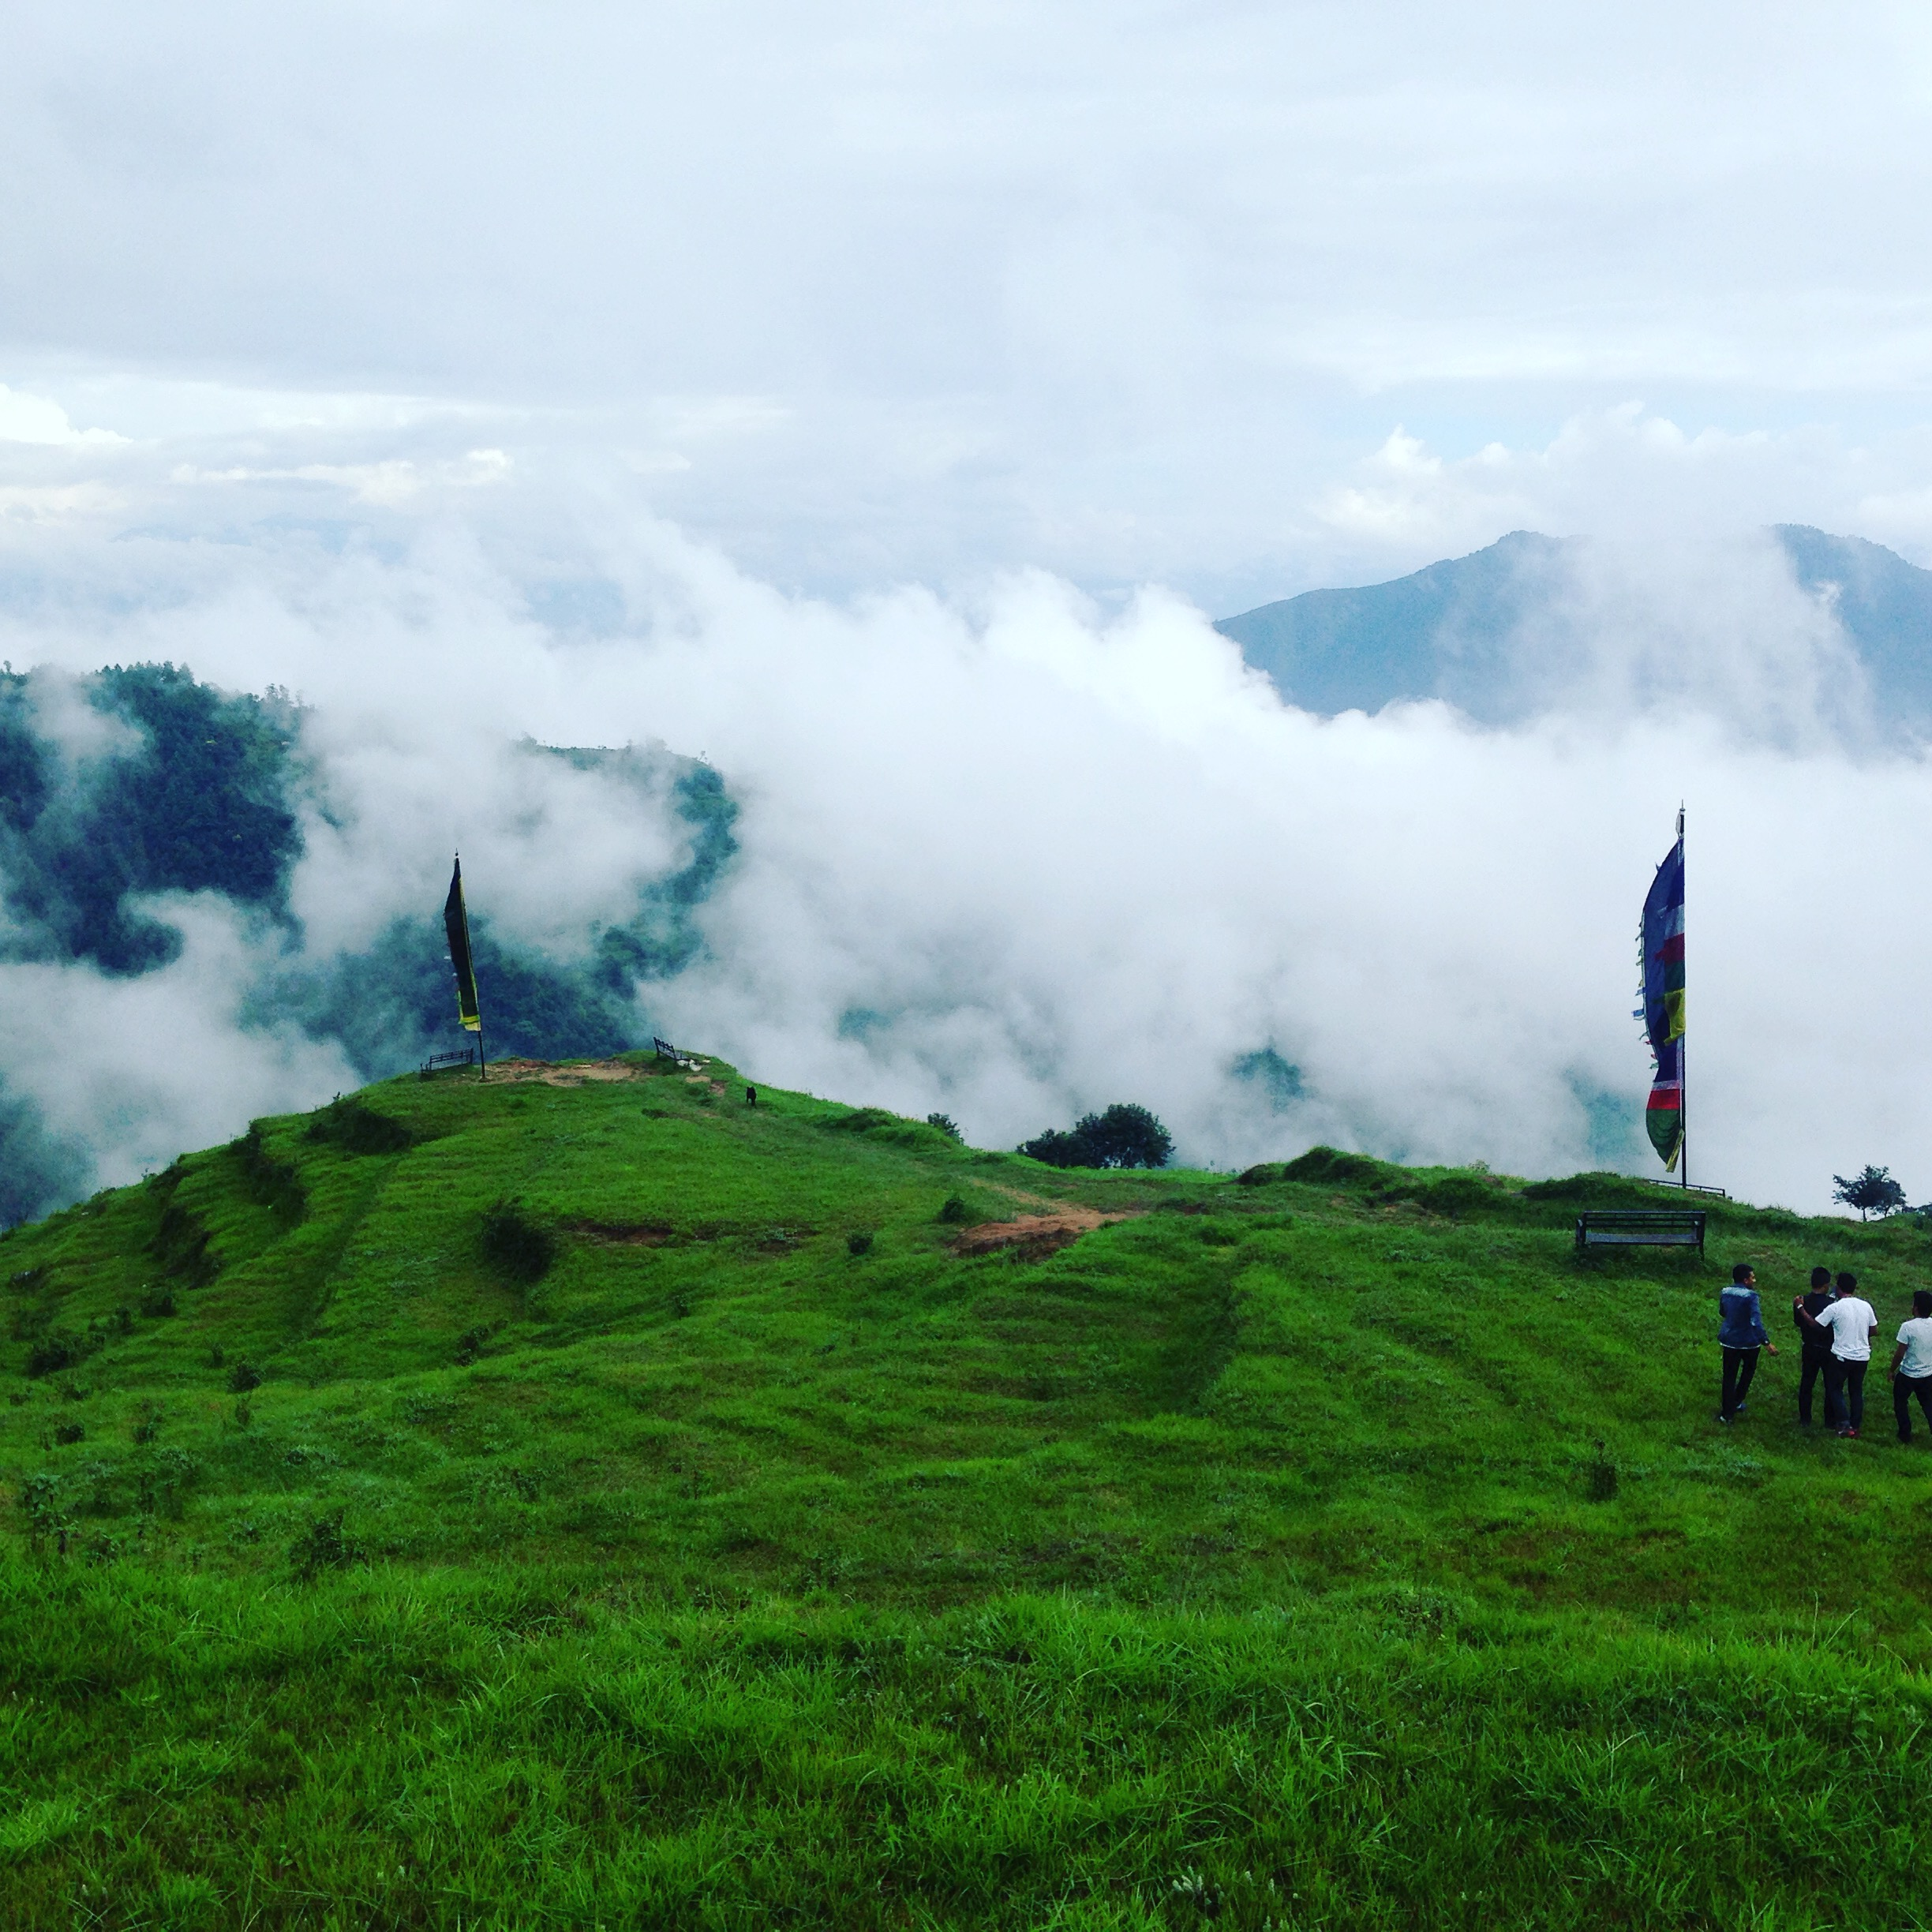 Kakani, where the clouds kiss the ground as we hiked through the mountains